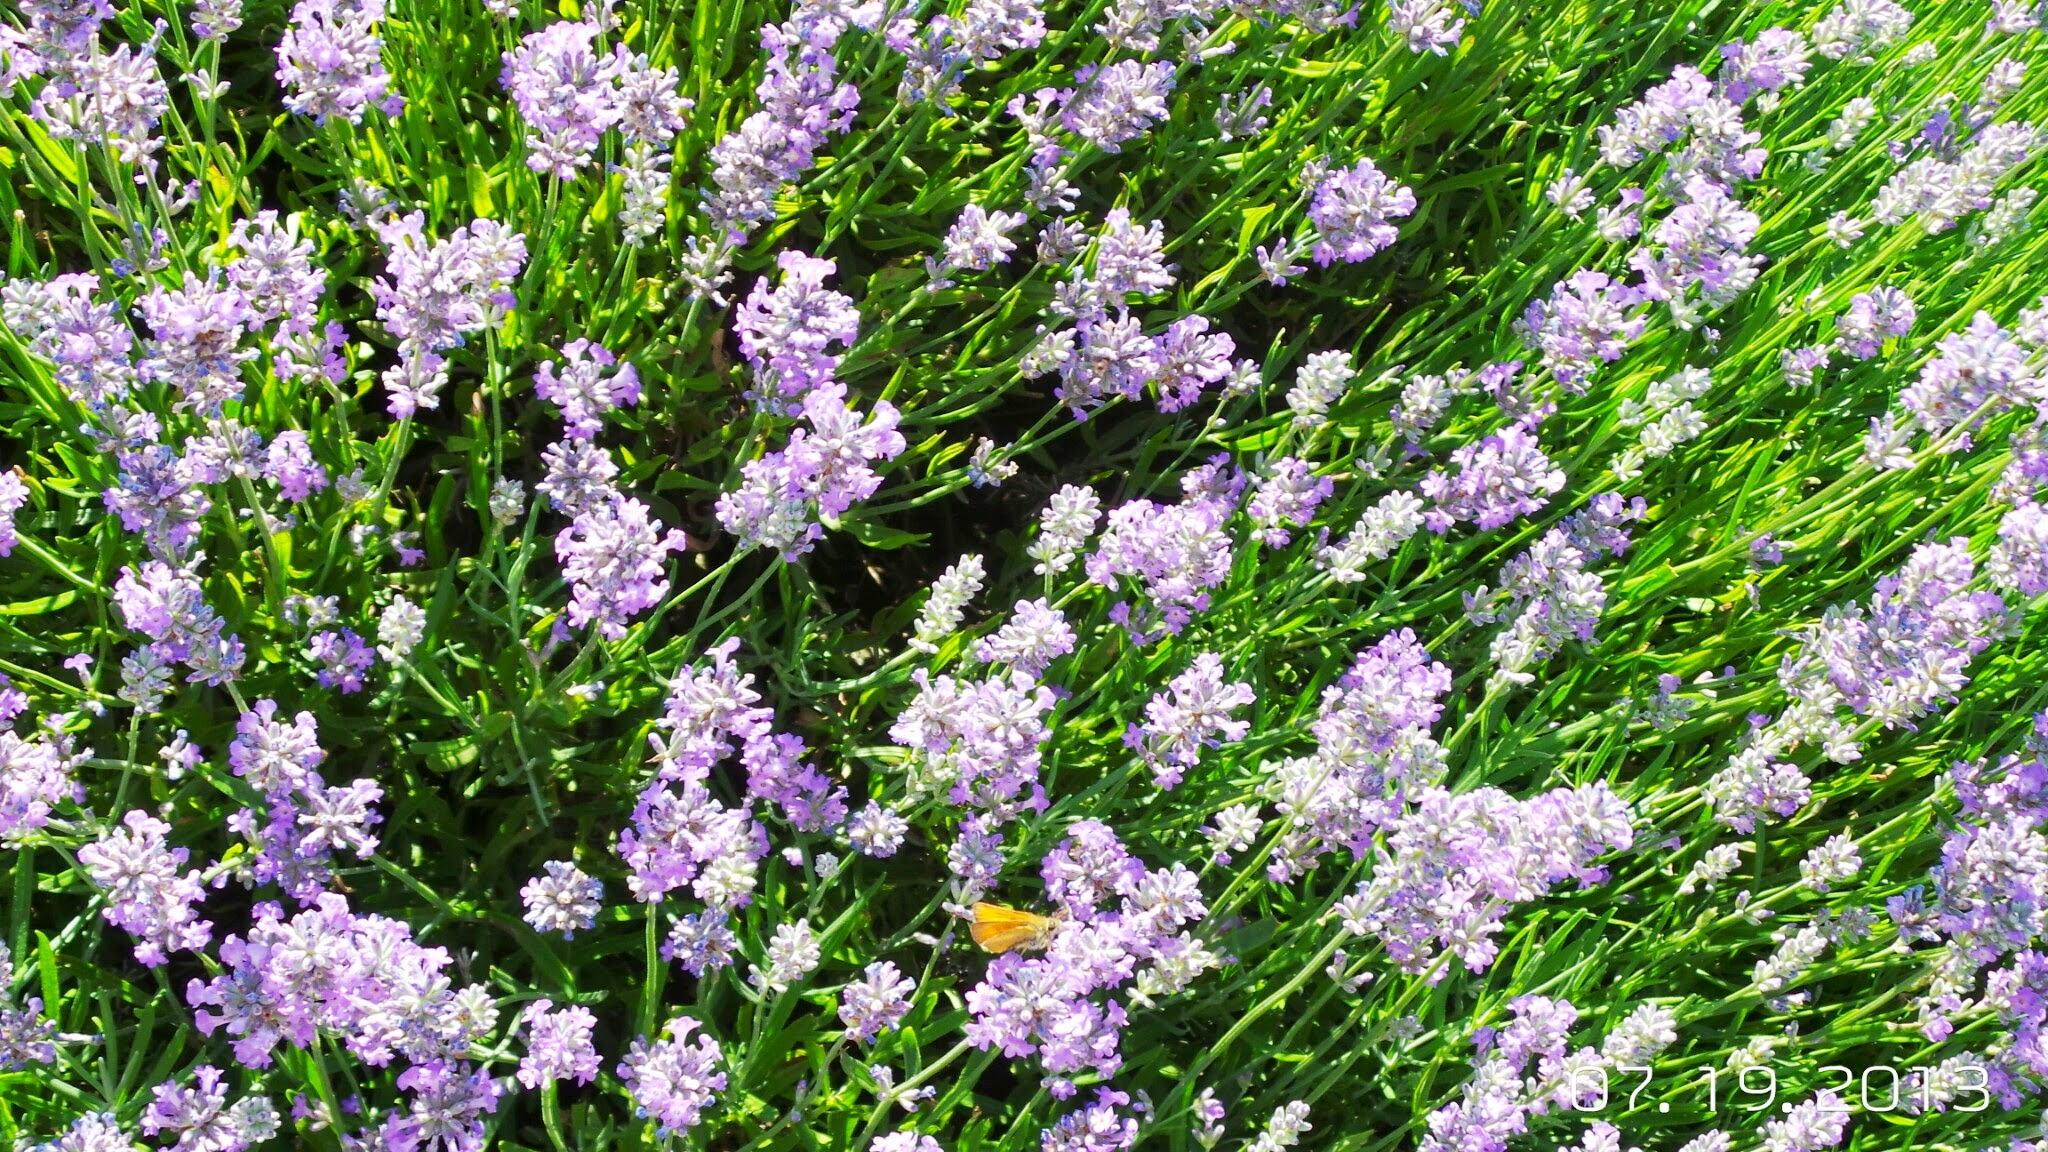 Lavender and Butterfly at Sudeley Castle